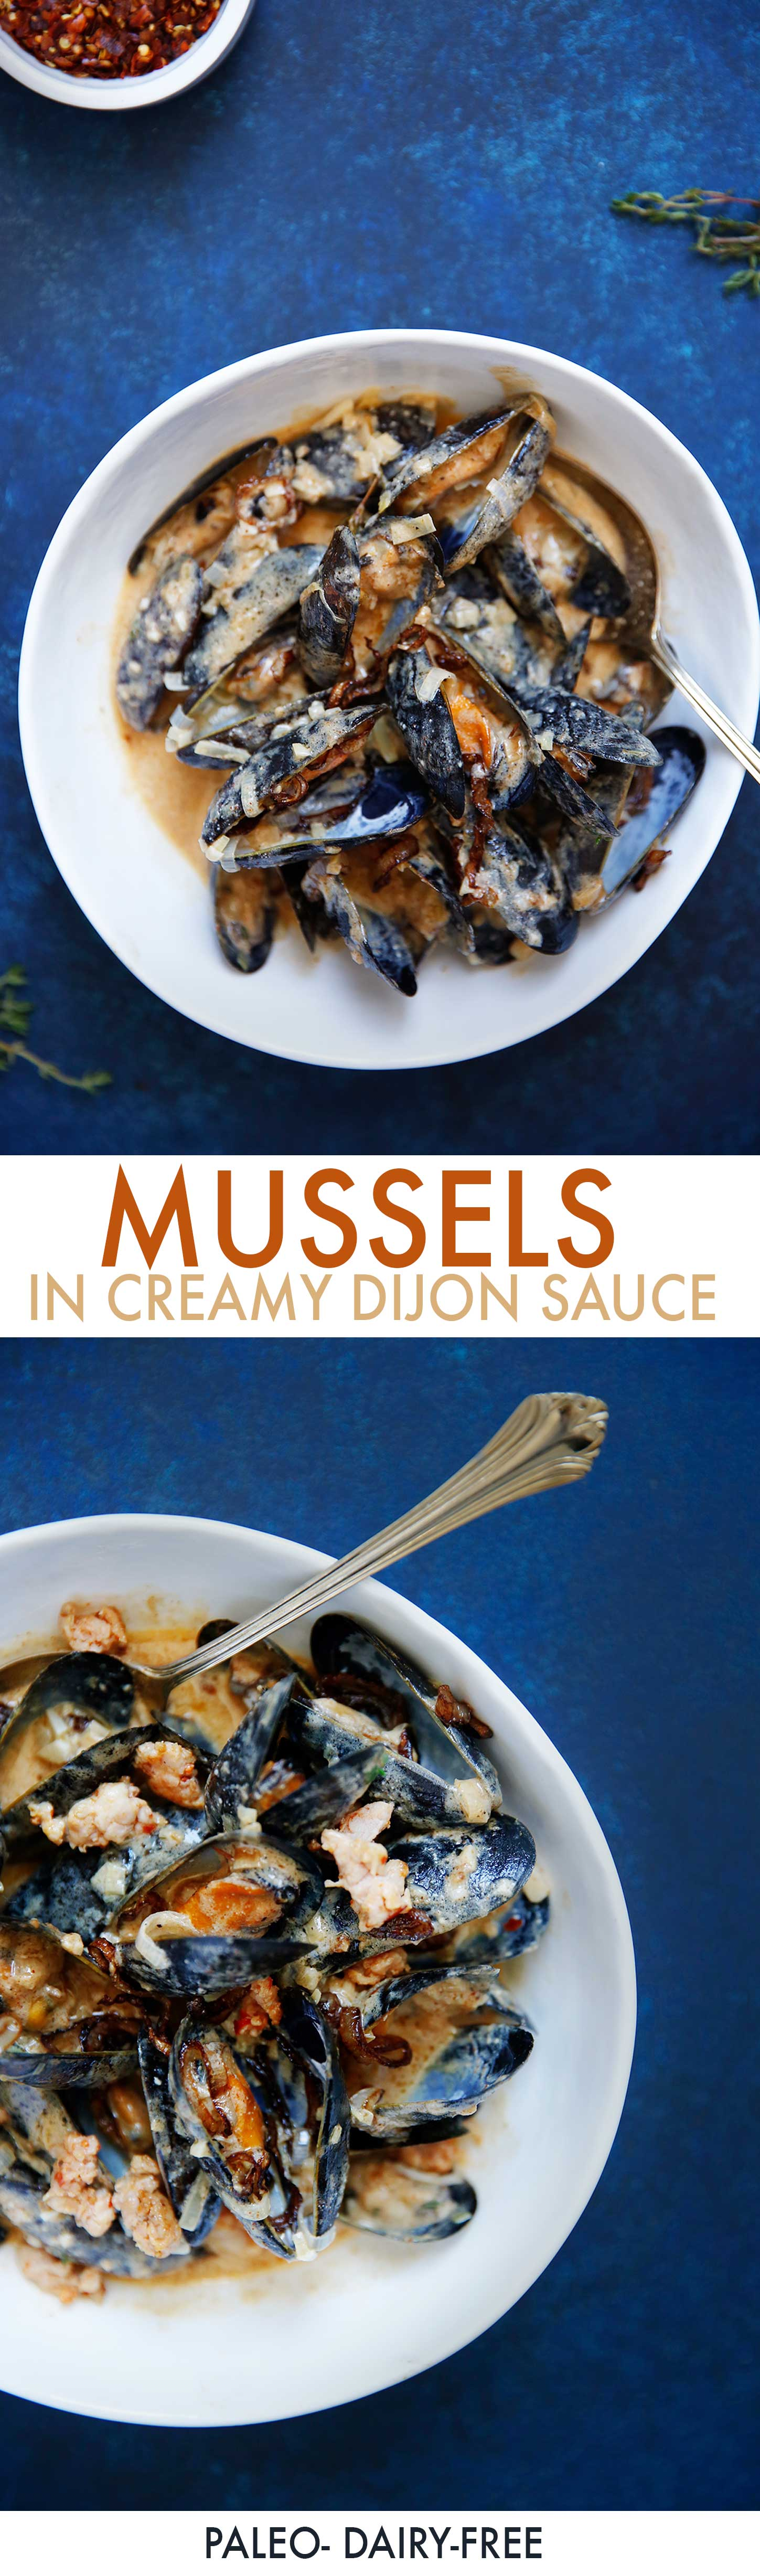 Mussels with Creamy Dijon Sauce - Lexi's Clean Kitchen